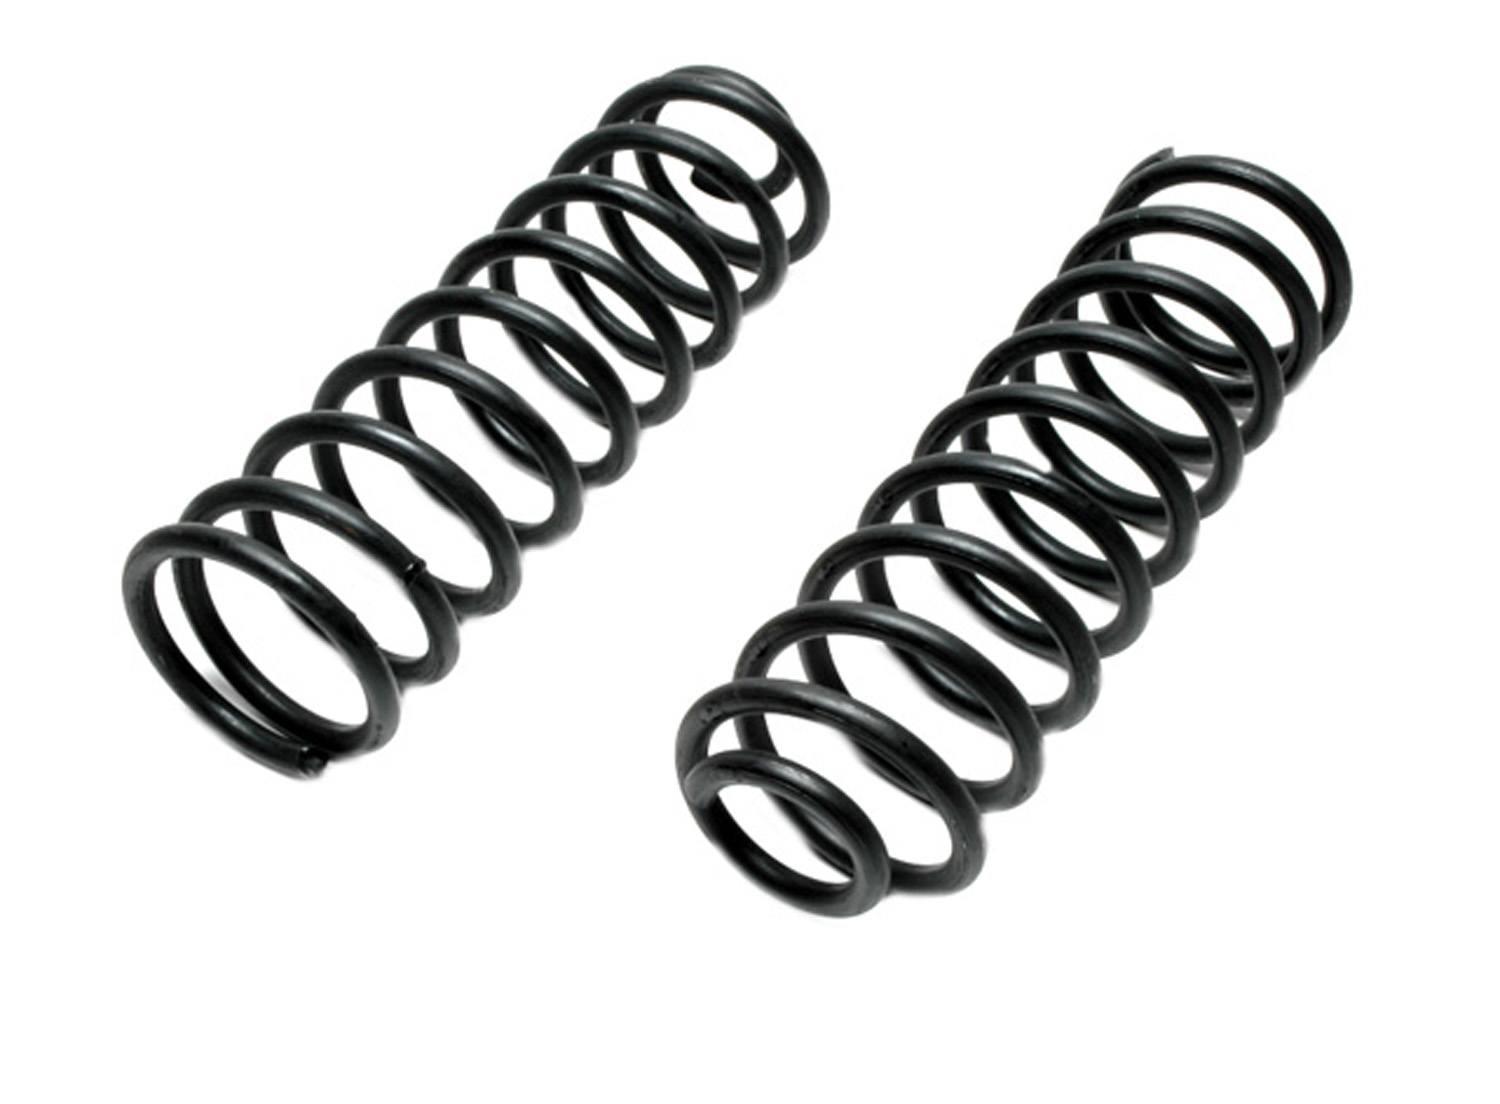 ACDELCO PROFESSIONAL - Coil Spring Set - DCC 45H2078